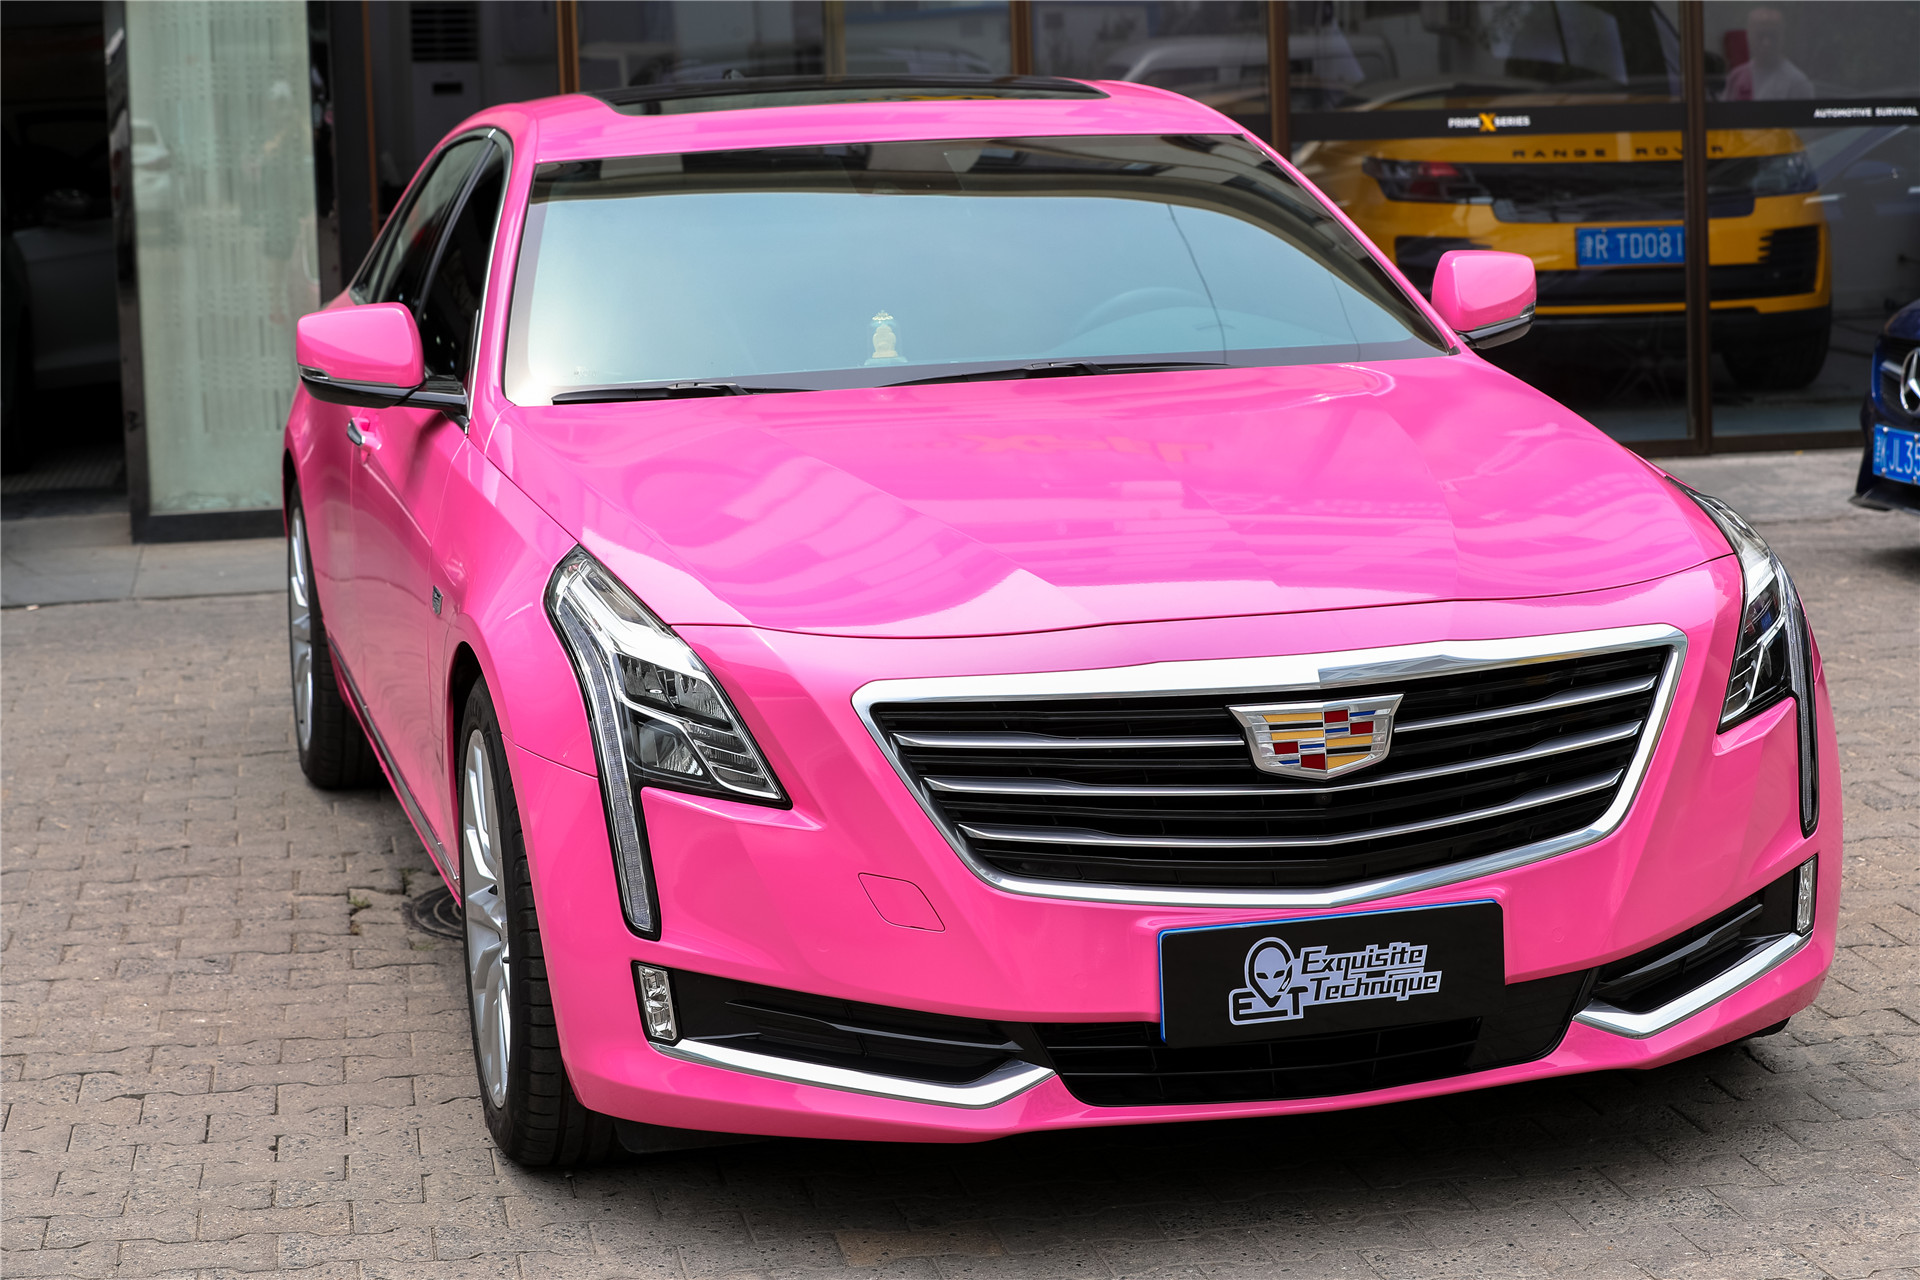 【本店案例】Cadillac CT6 280 --XPEL LUX PLUS